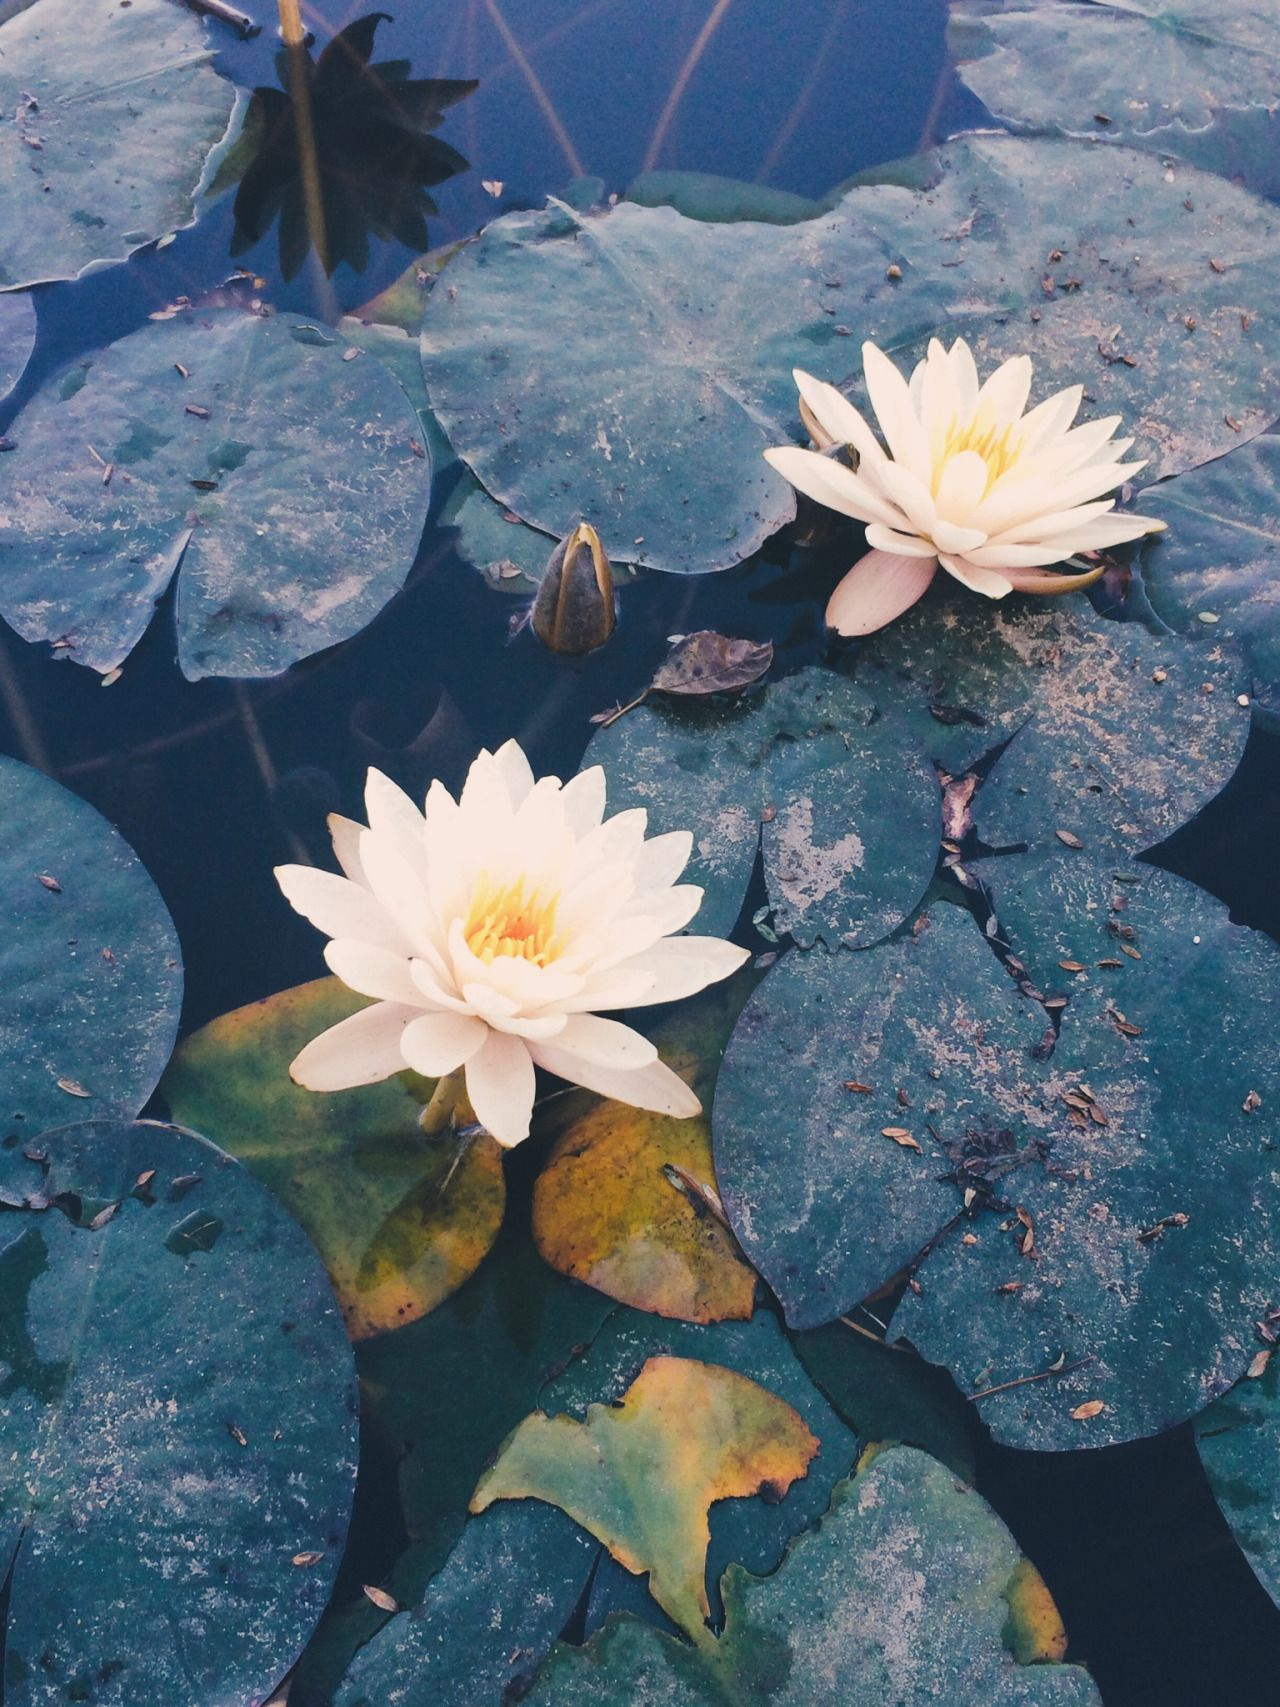 Danielodowd Maritzaa8 Flowers Nature Aesthetic Water Lilly